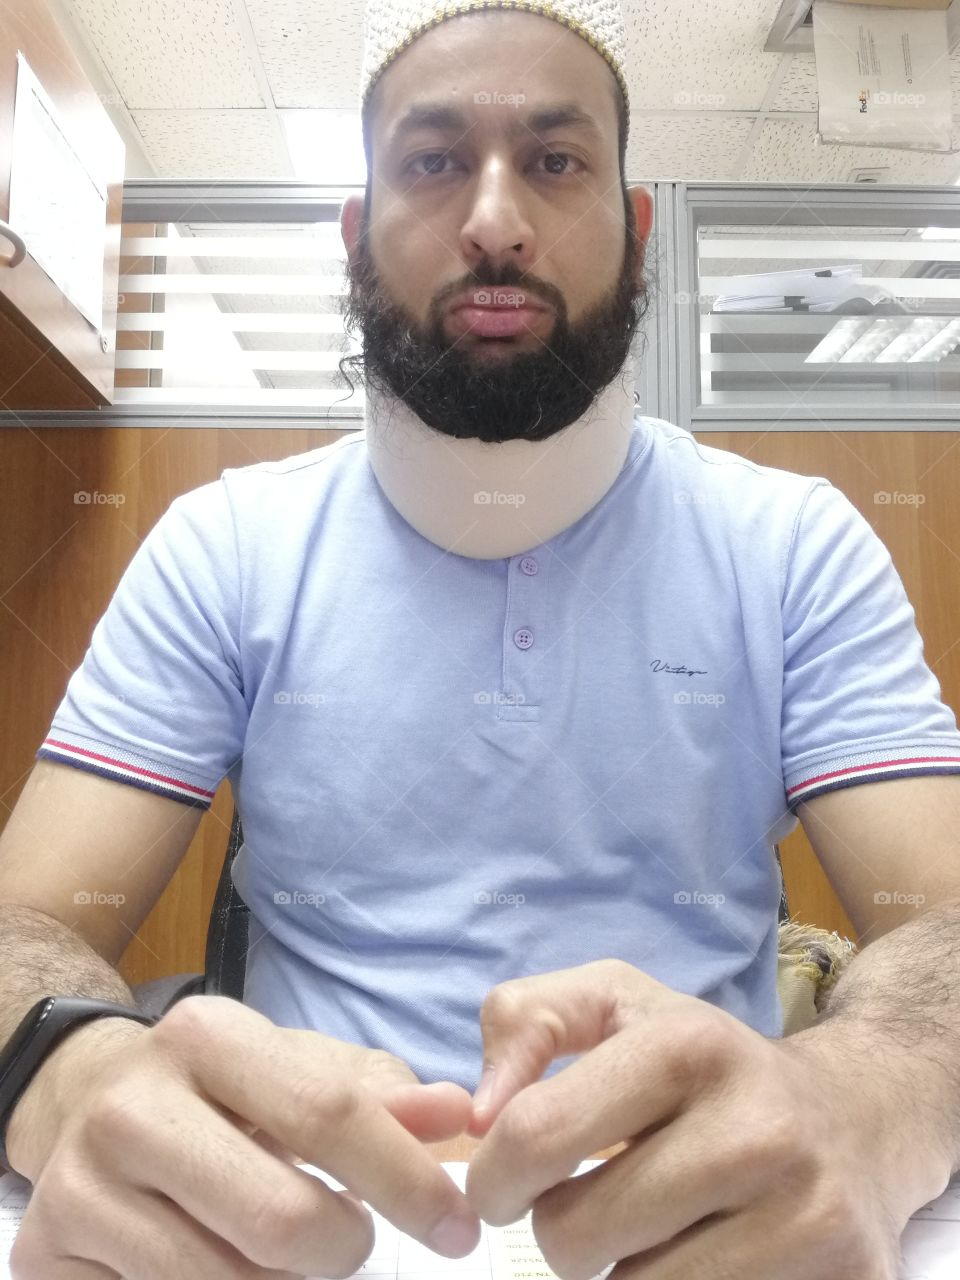 Young Bearded man in tshirt with neck pain collar and fitness band